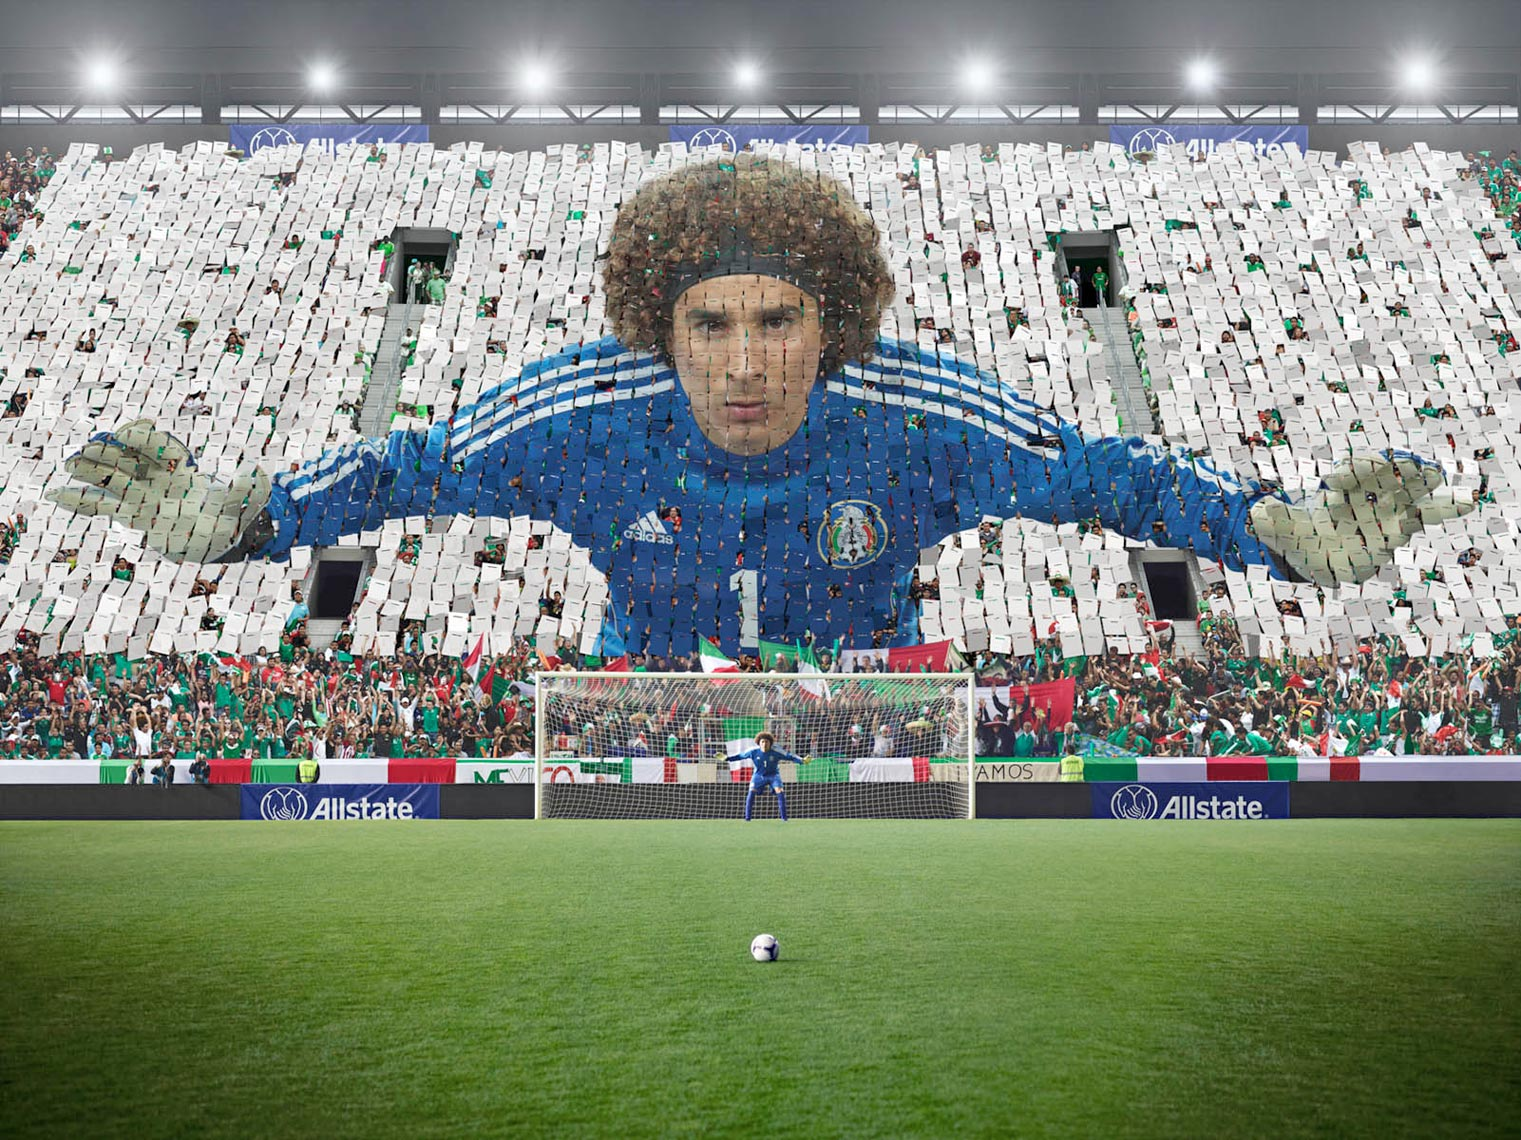 Memo Ochoa Mexican Goalie Card Stunt Photo by Monte Isom